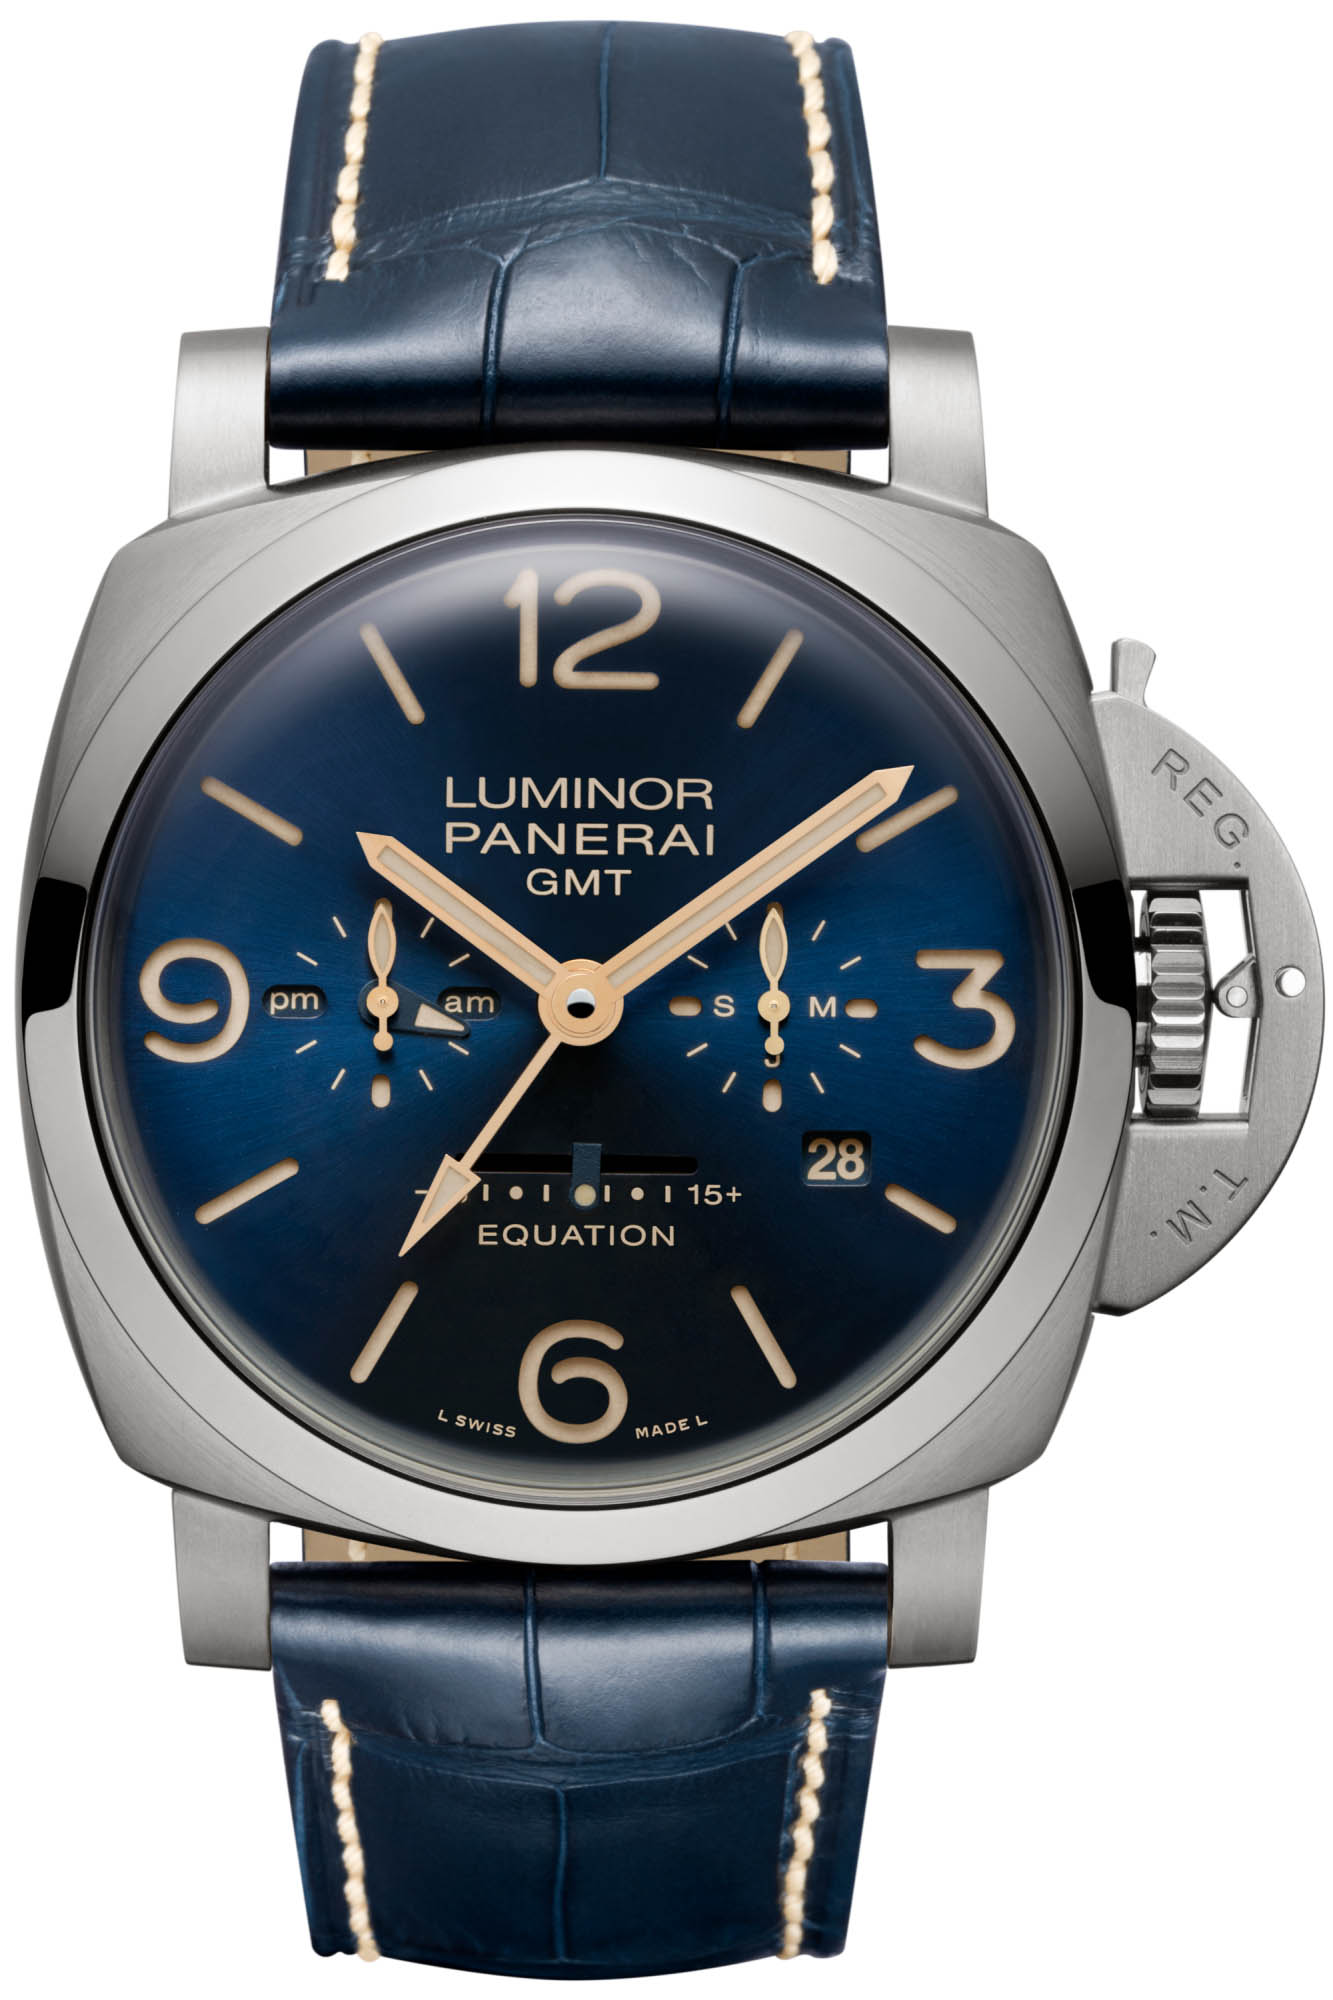 panerai-luminor-1950-equation-of-time-pam00670-1.jpg